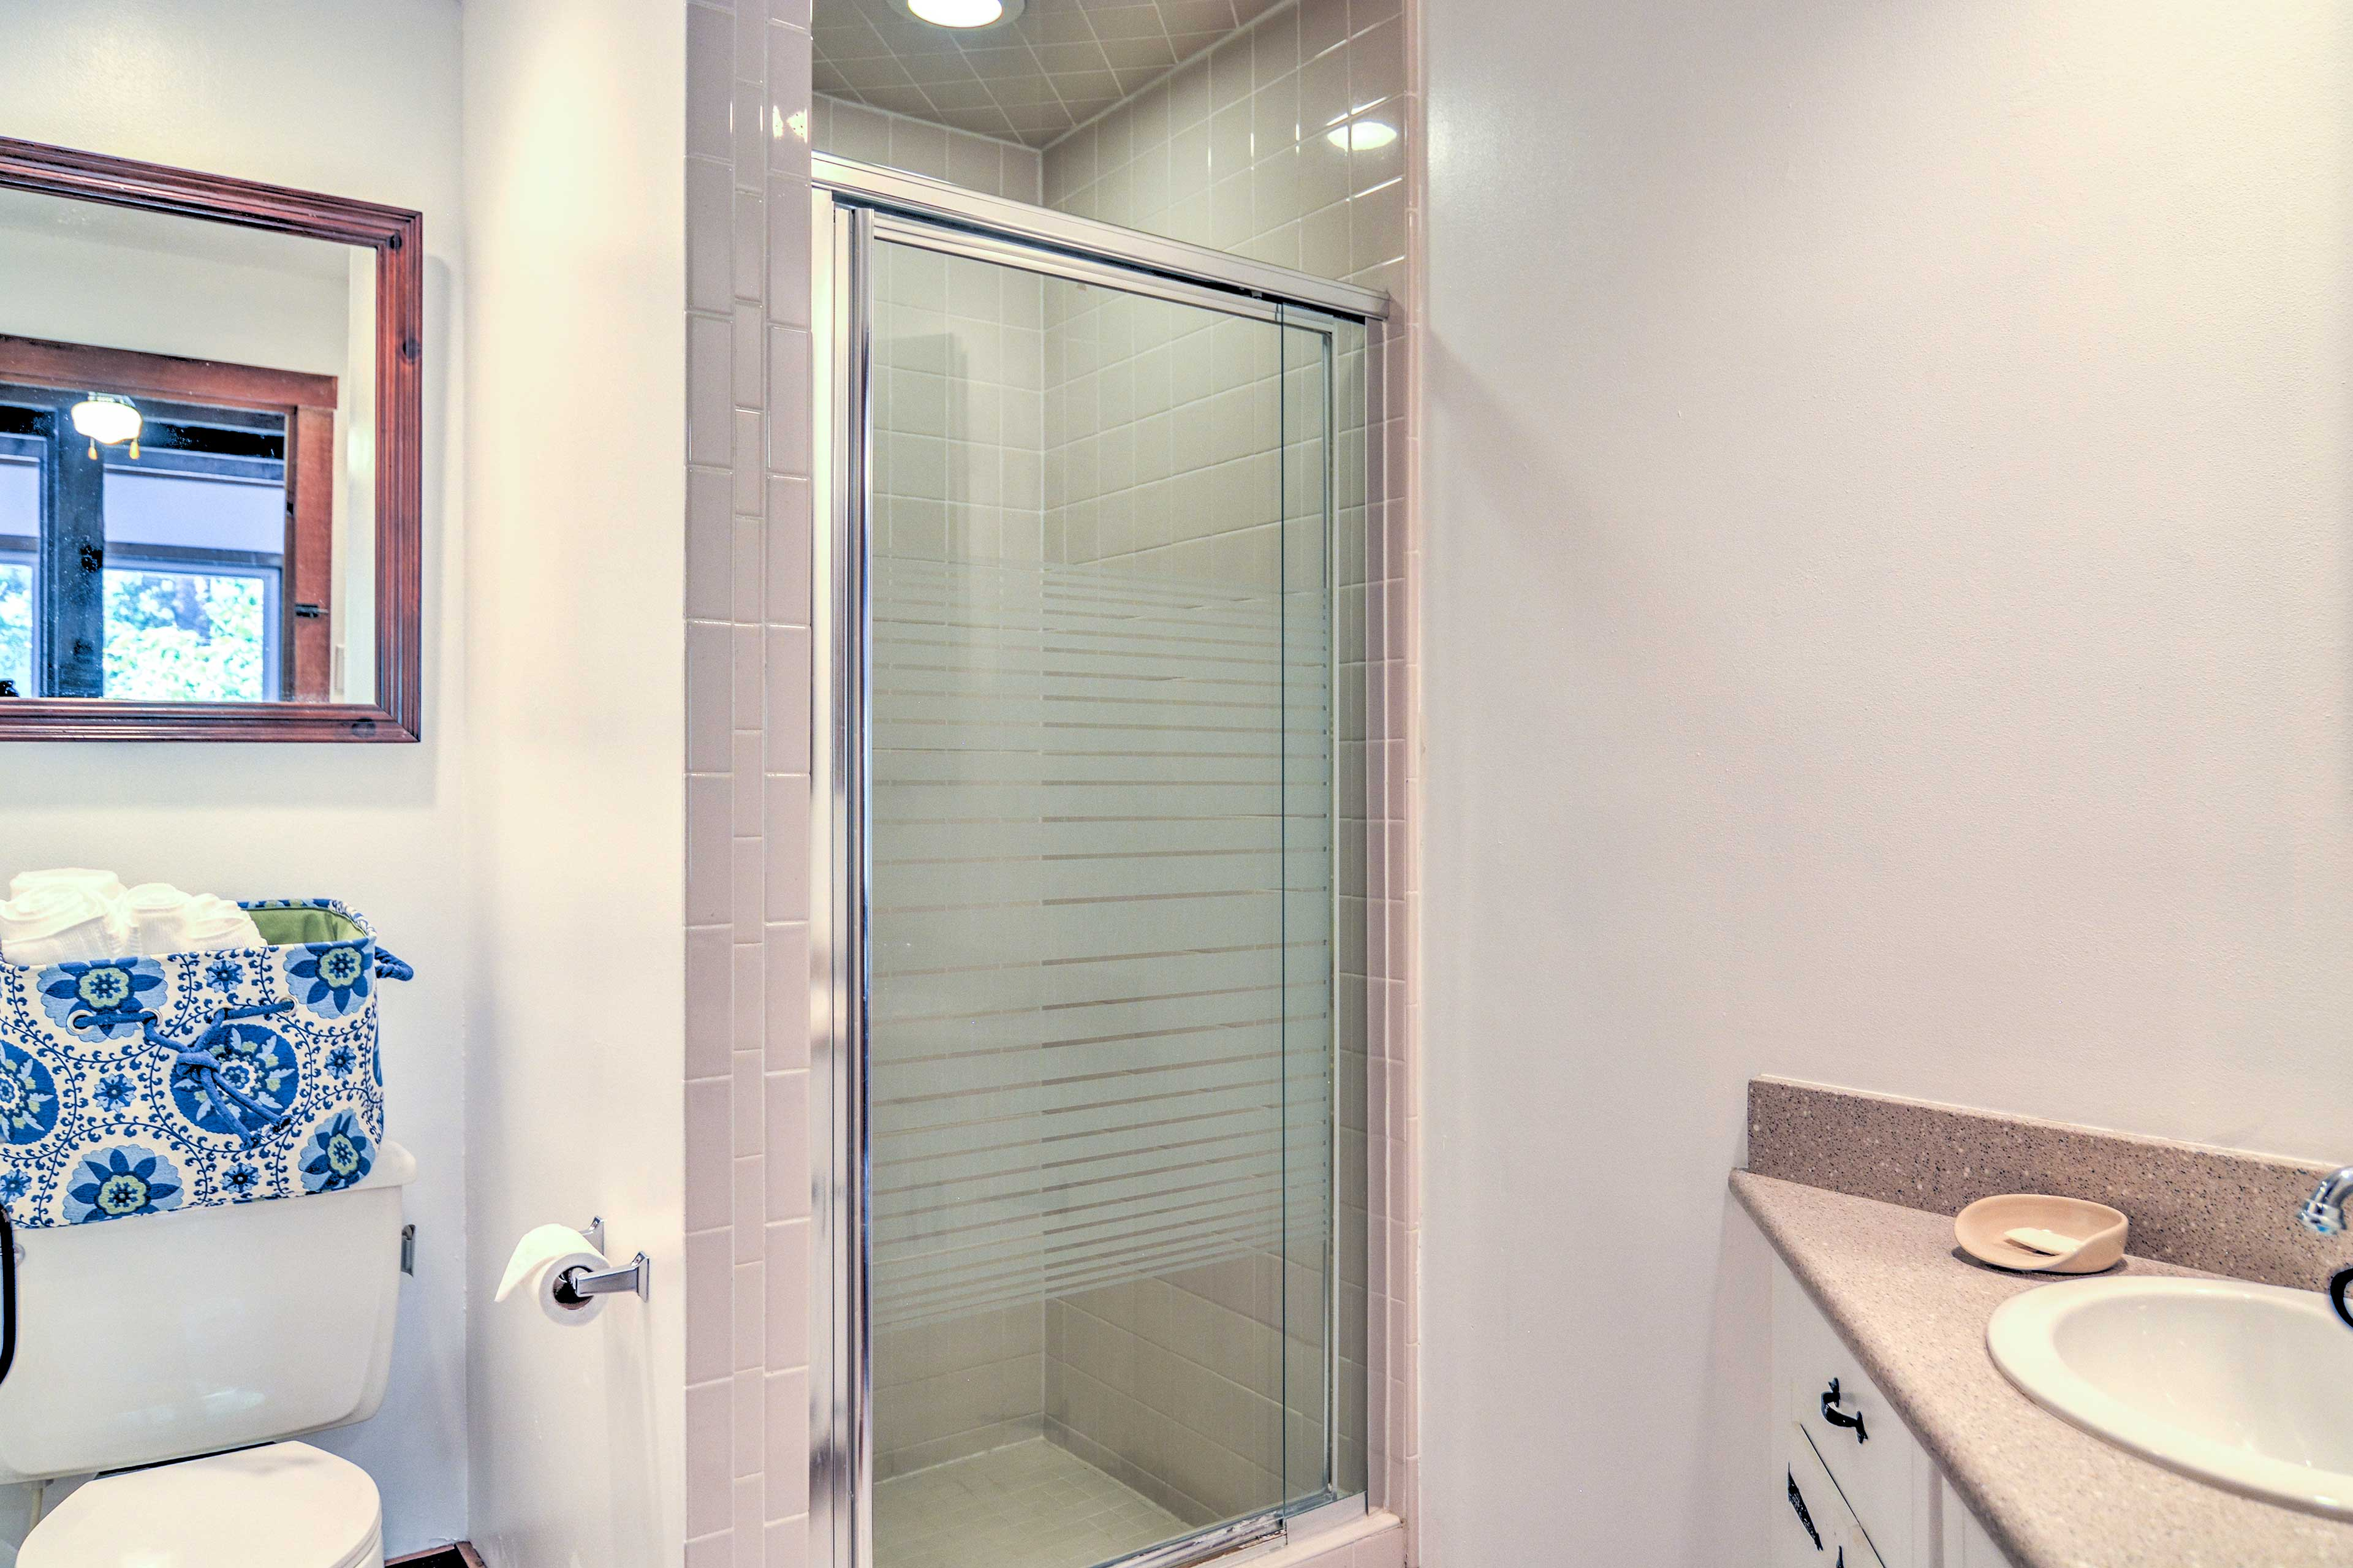 You'll find a walk-in shower in the second bathroom.